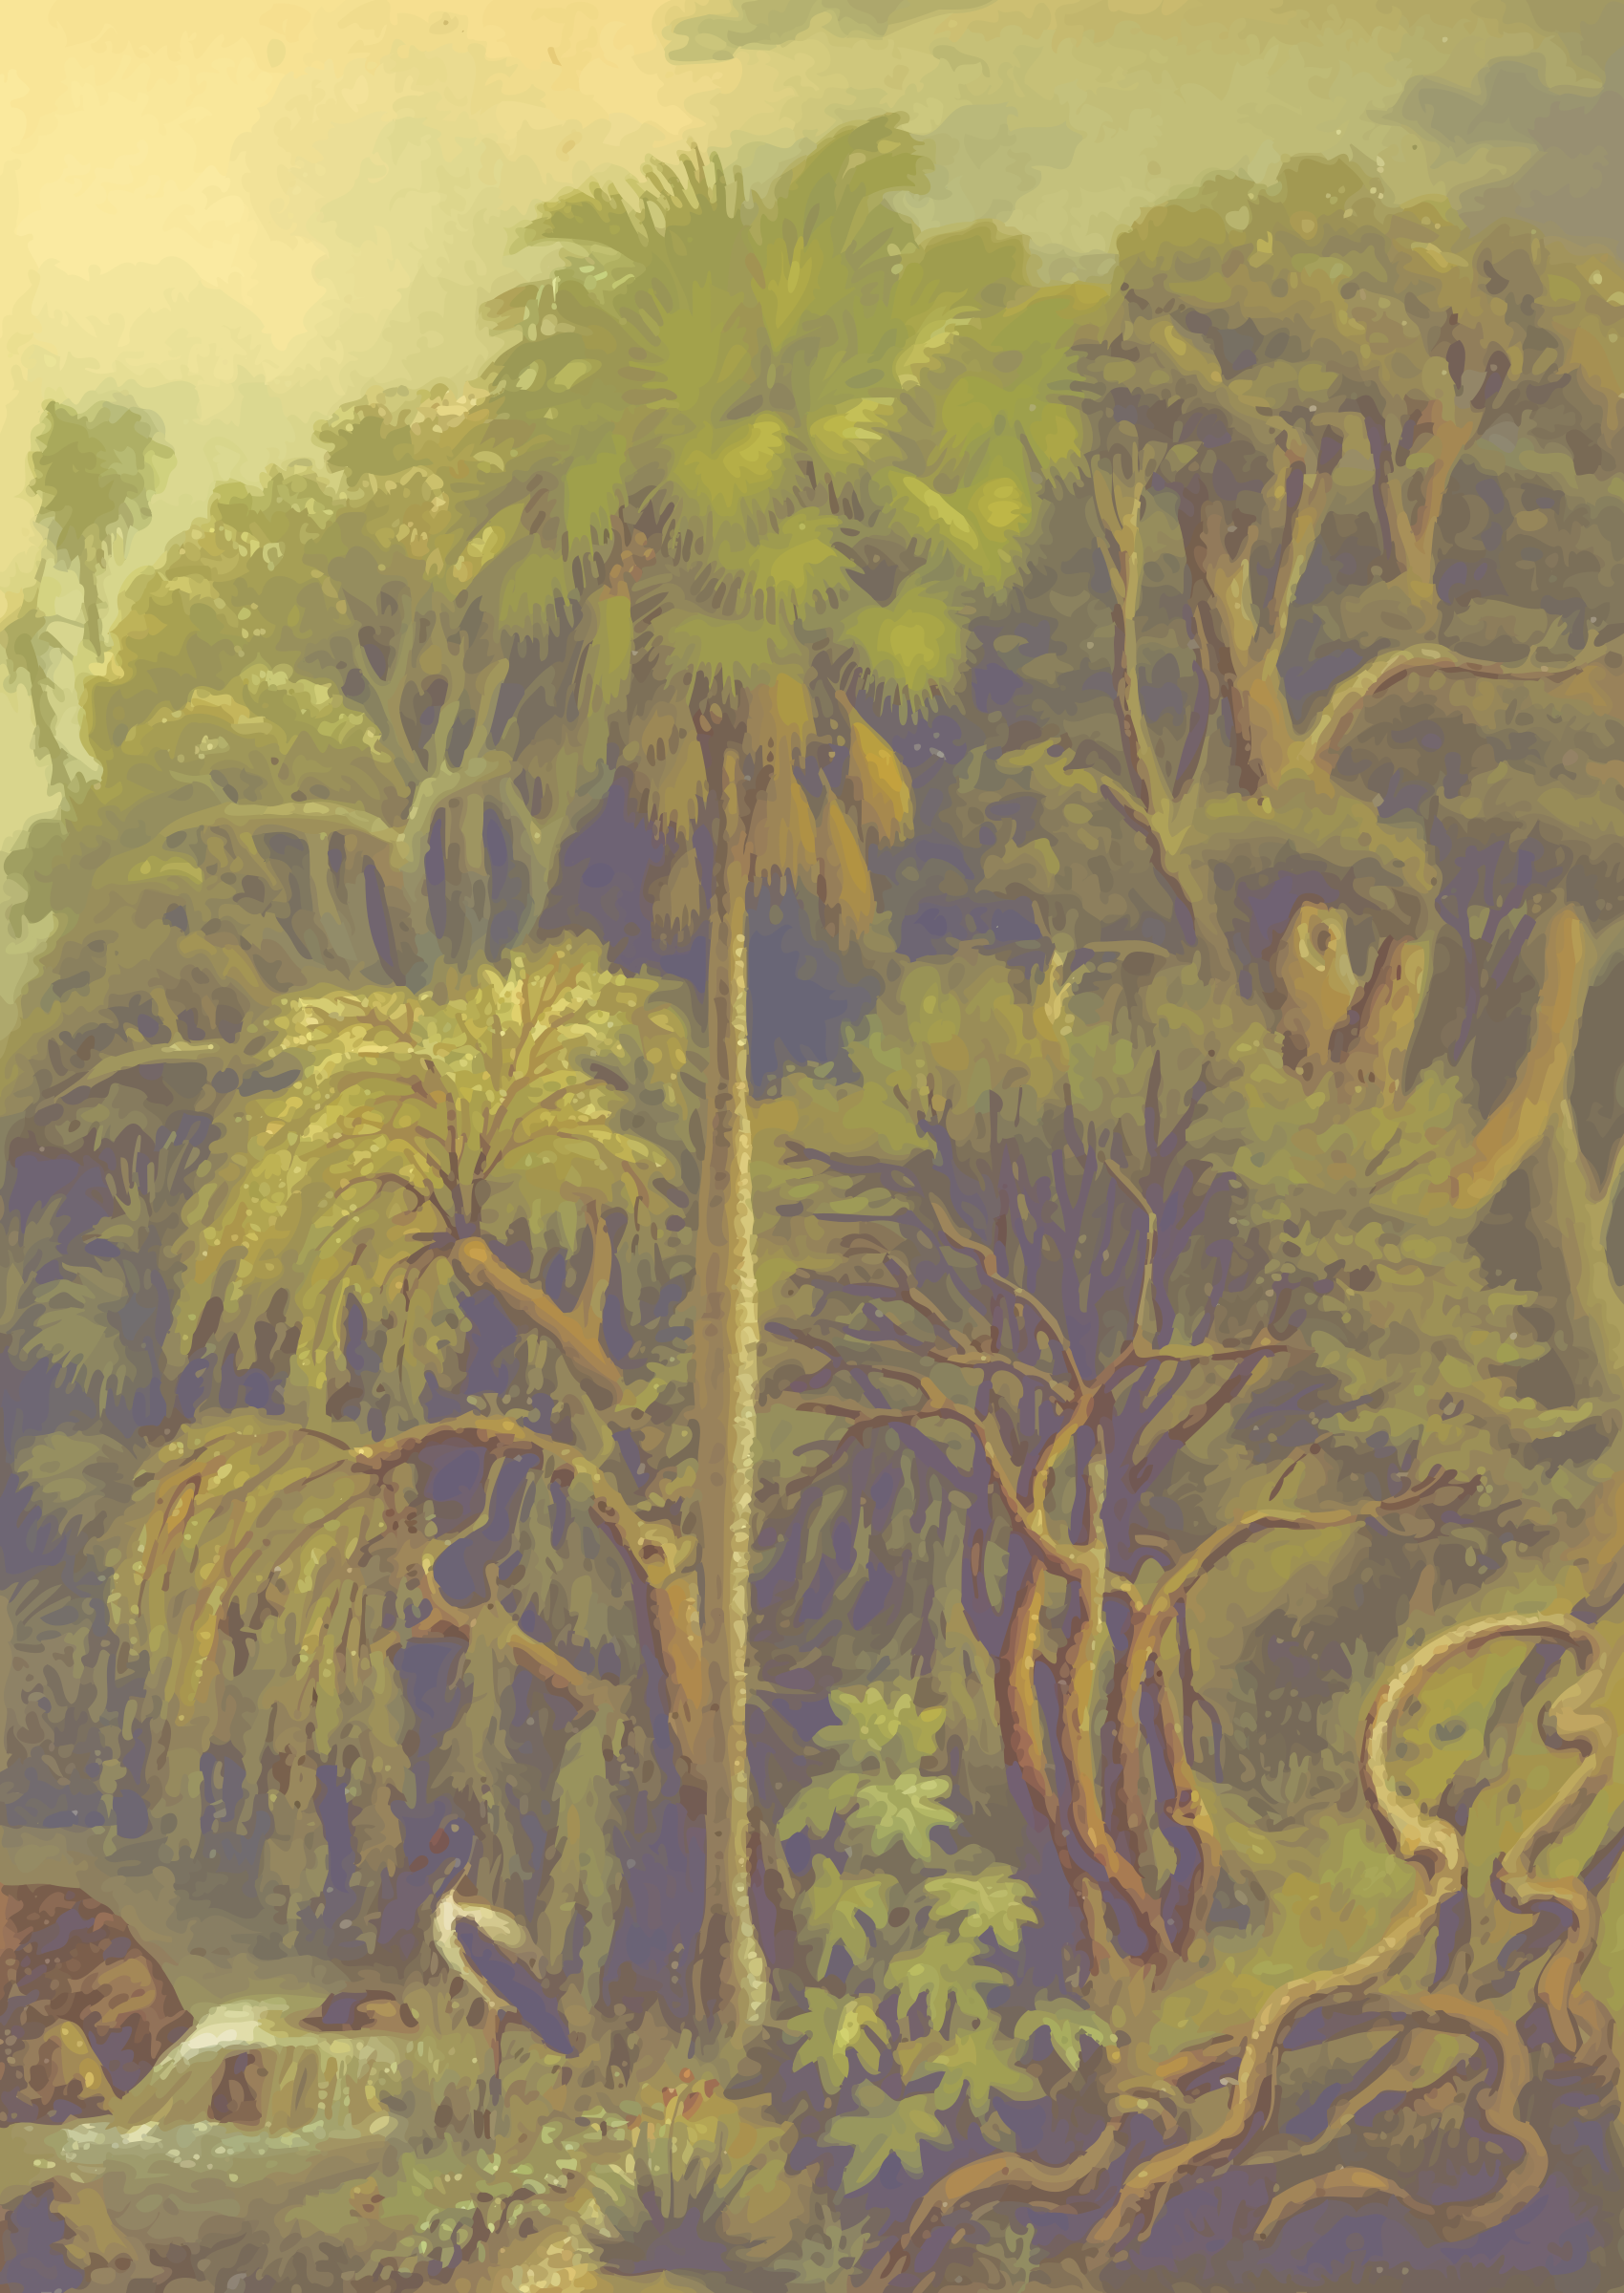 Jungle vegetation by Firkin